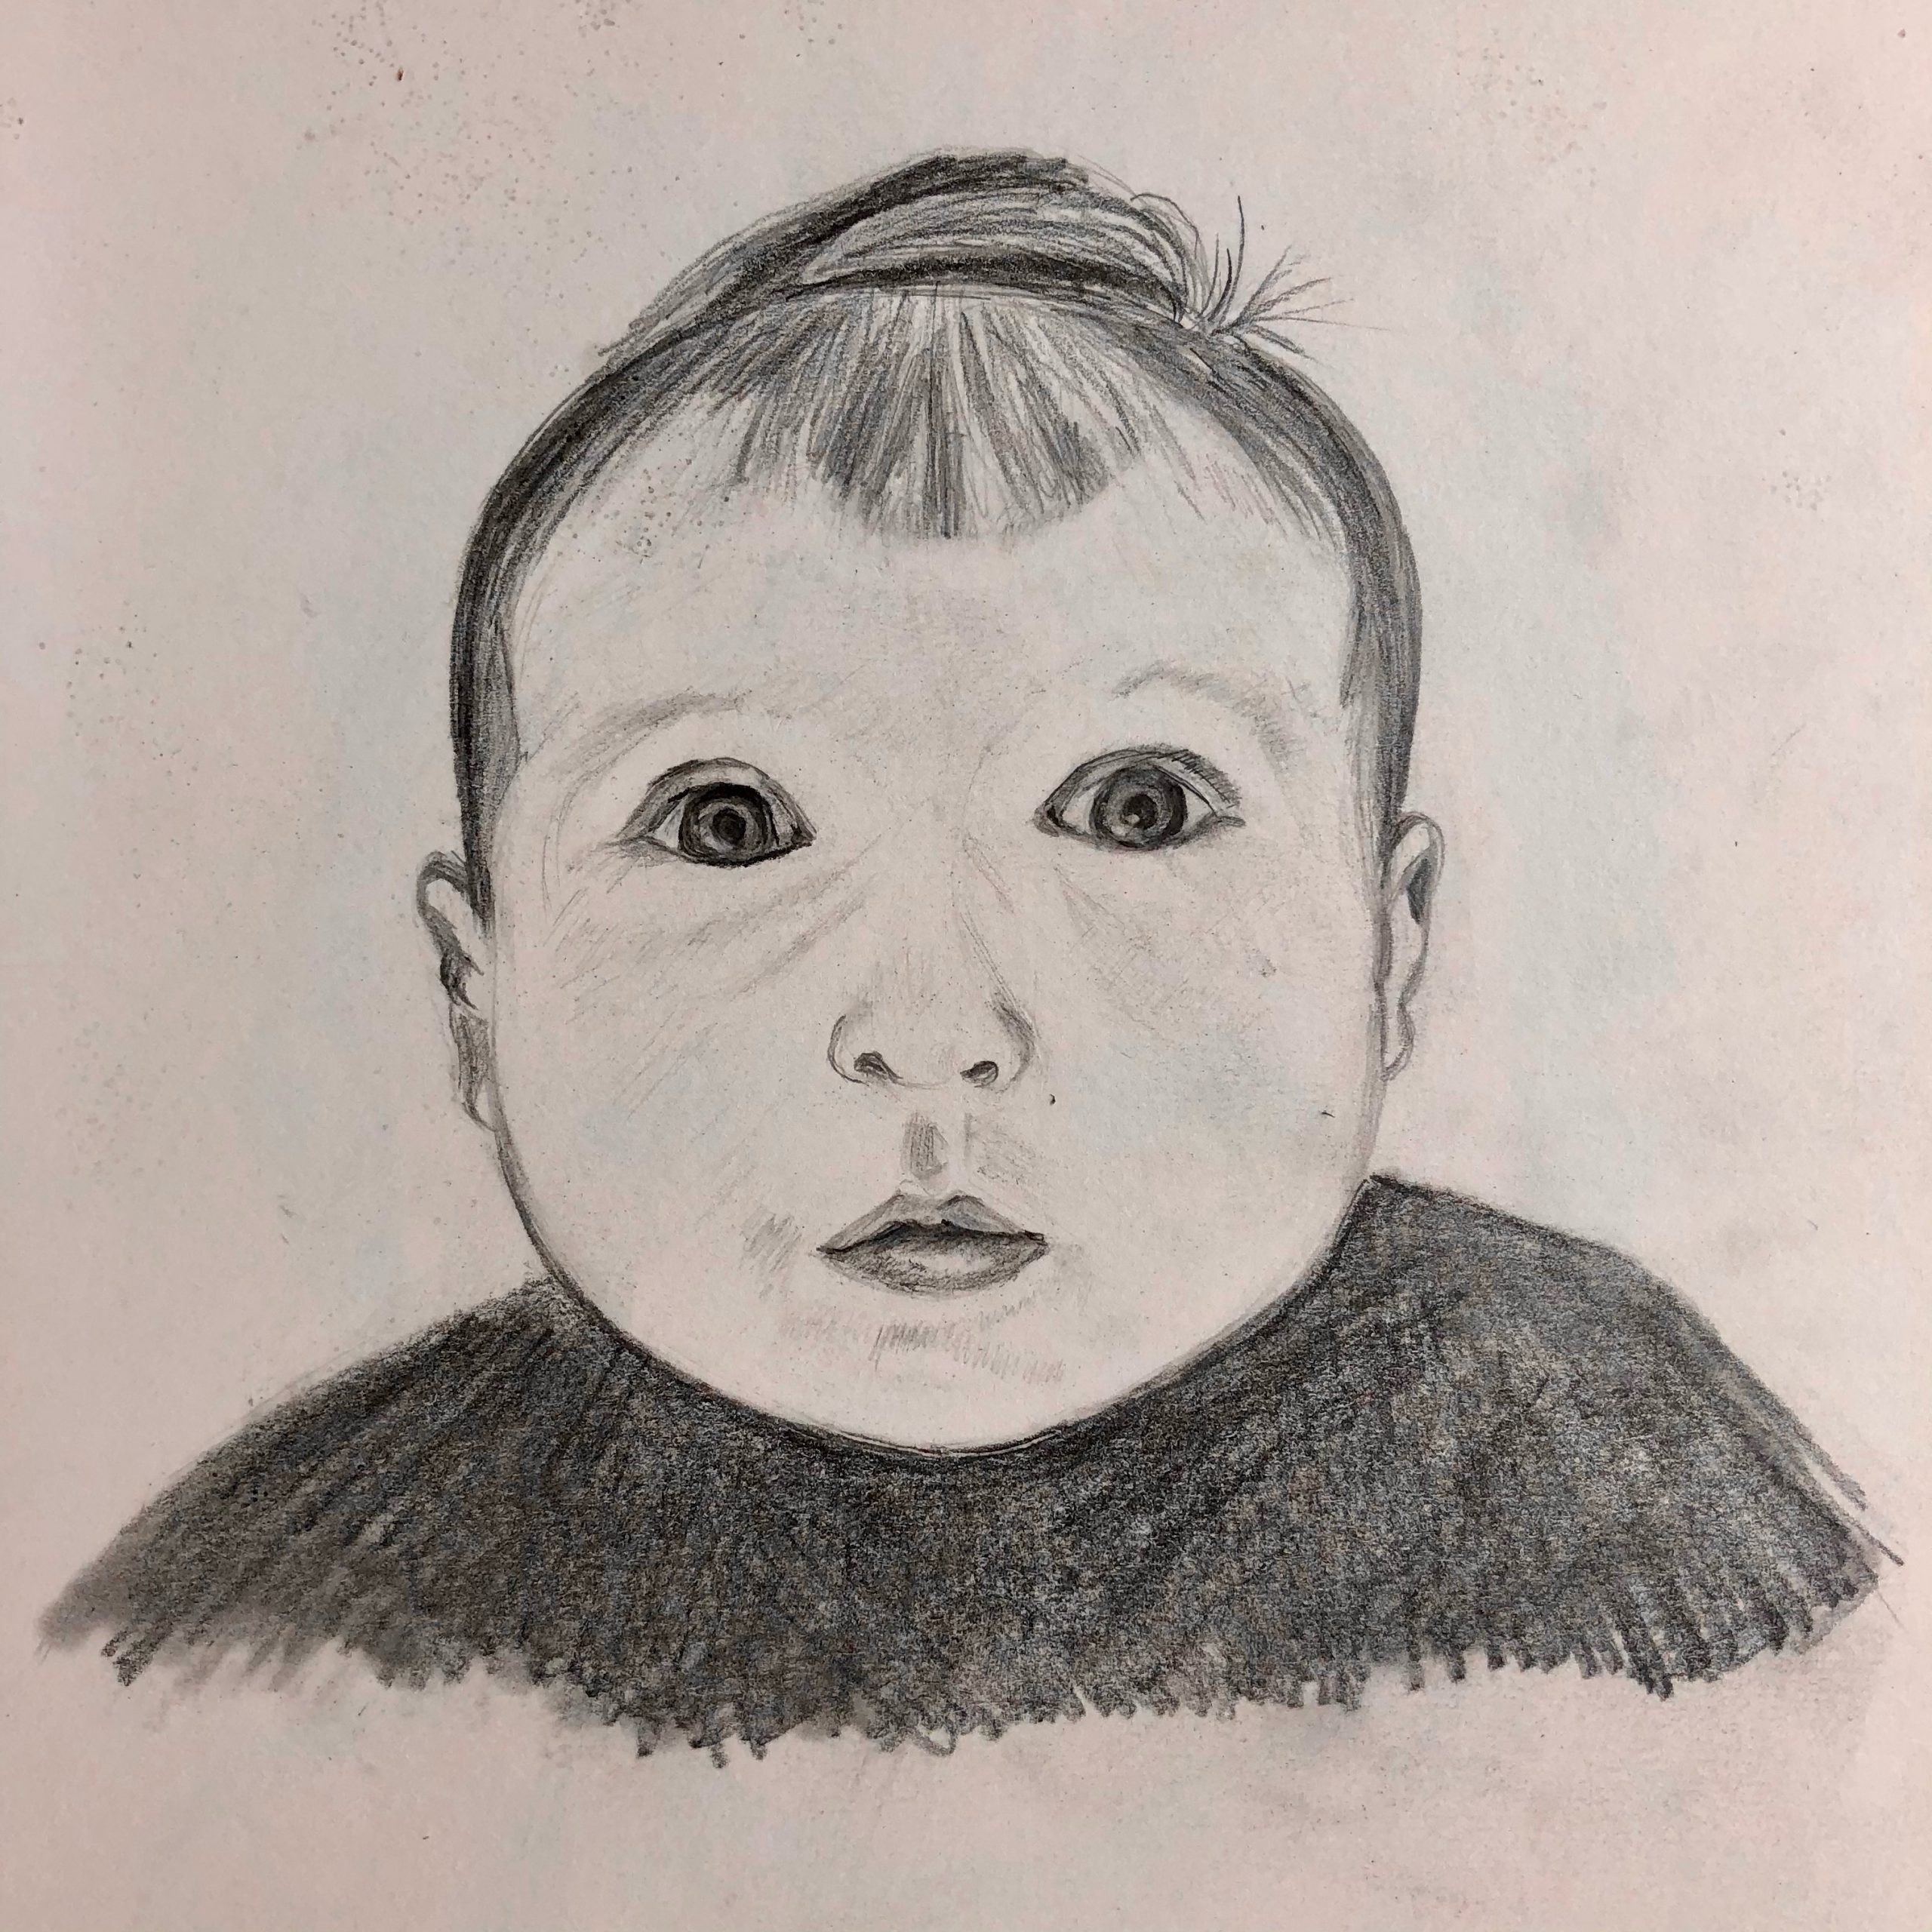 Portrait of a baby by Michelle created at online art course with live tuition with an artist Raya Brown